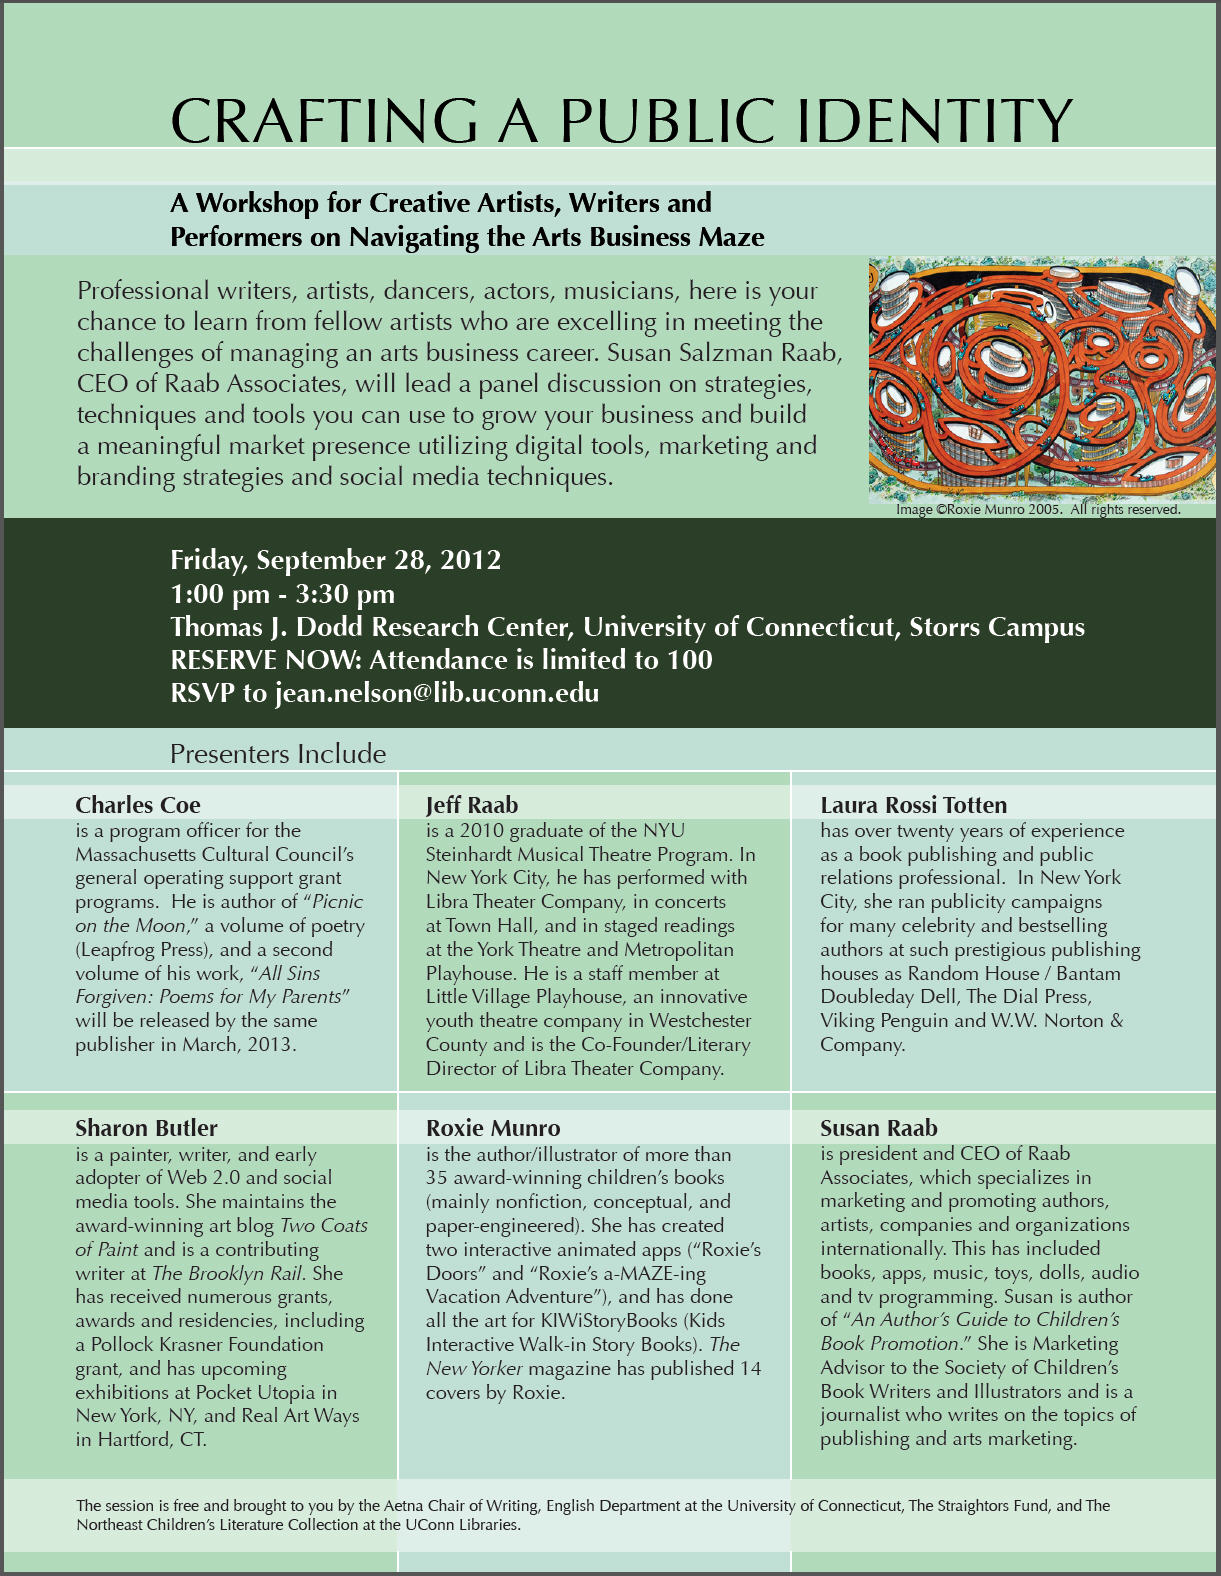 """""""Crafting a Public Identity"""" Workshop 9/28/2012 Dodd Research Center, Storrs, CT"""